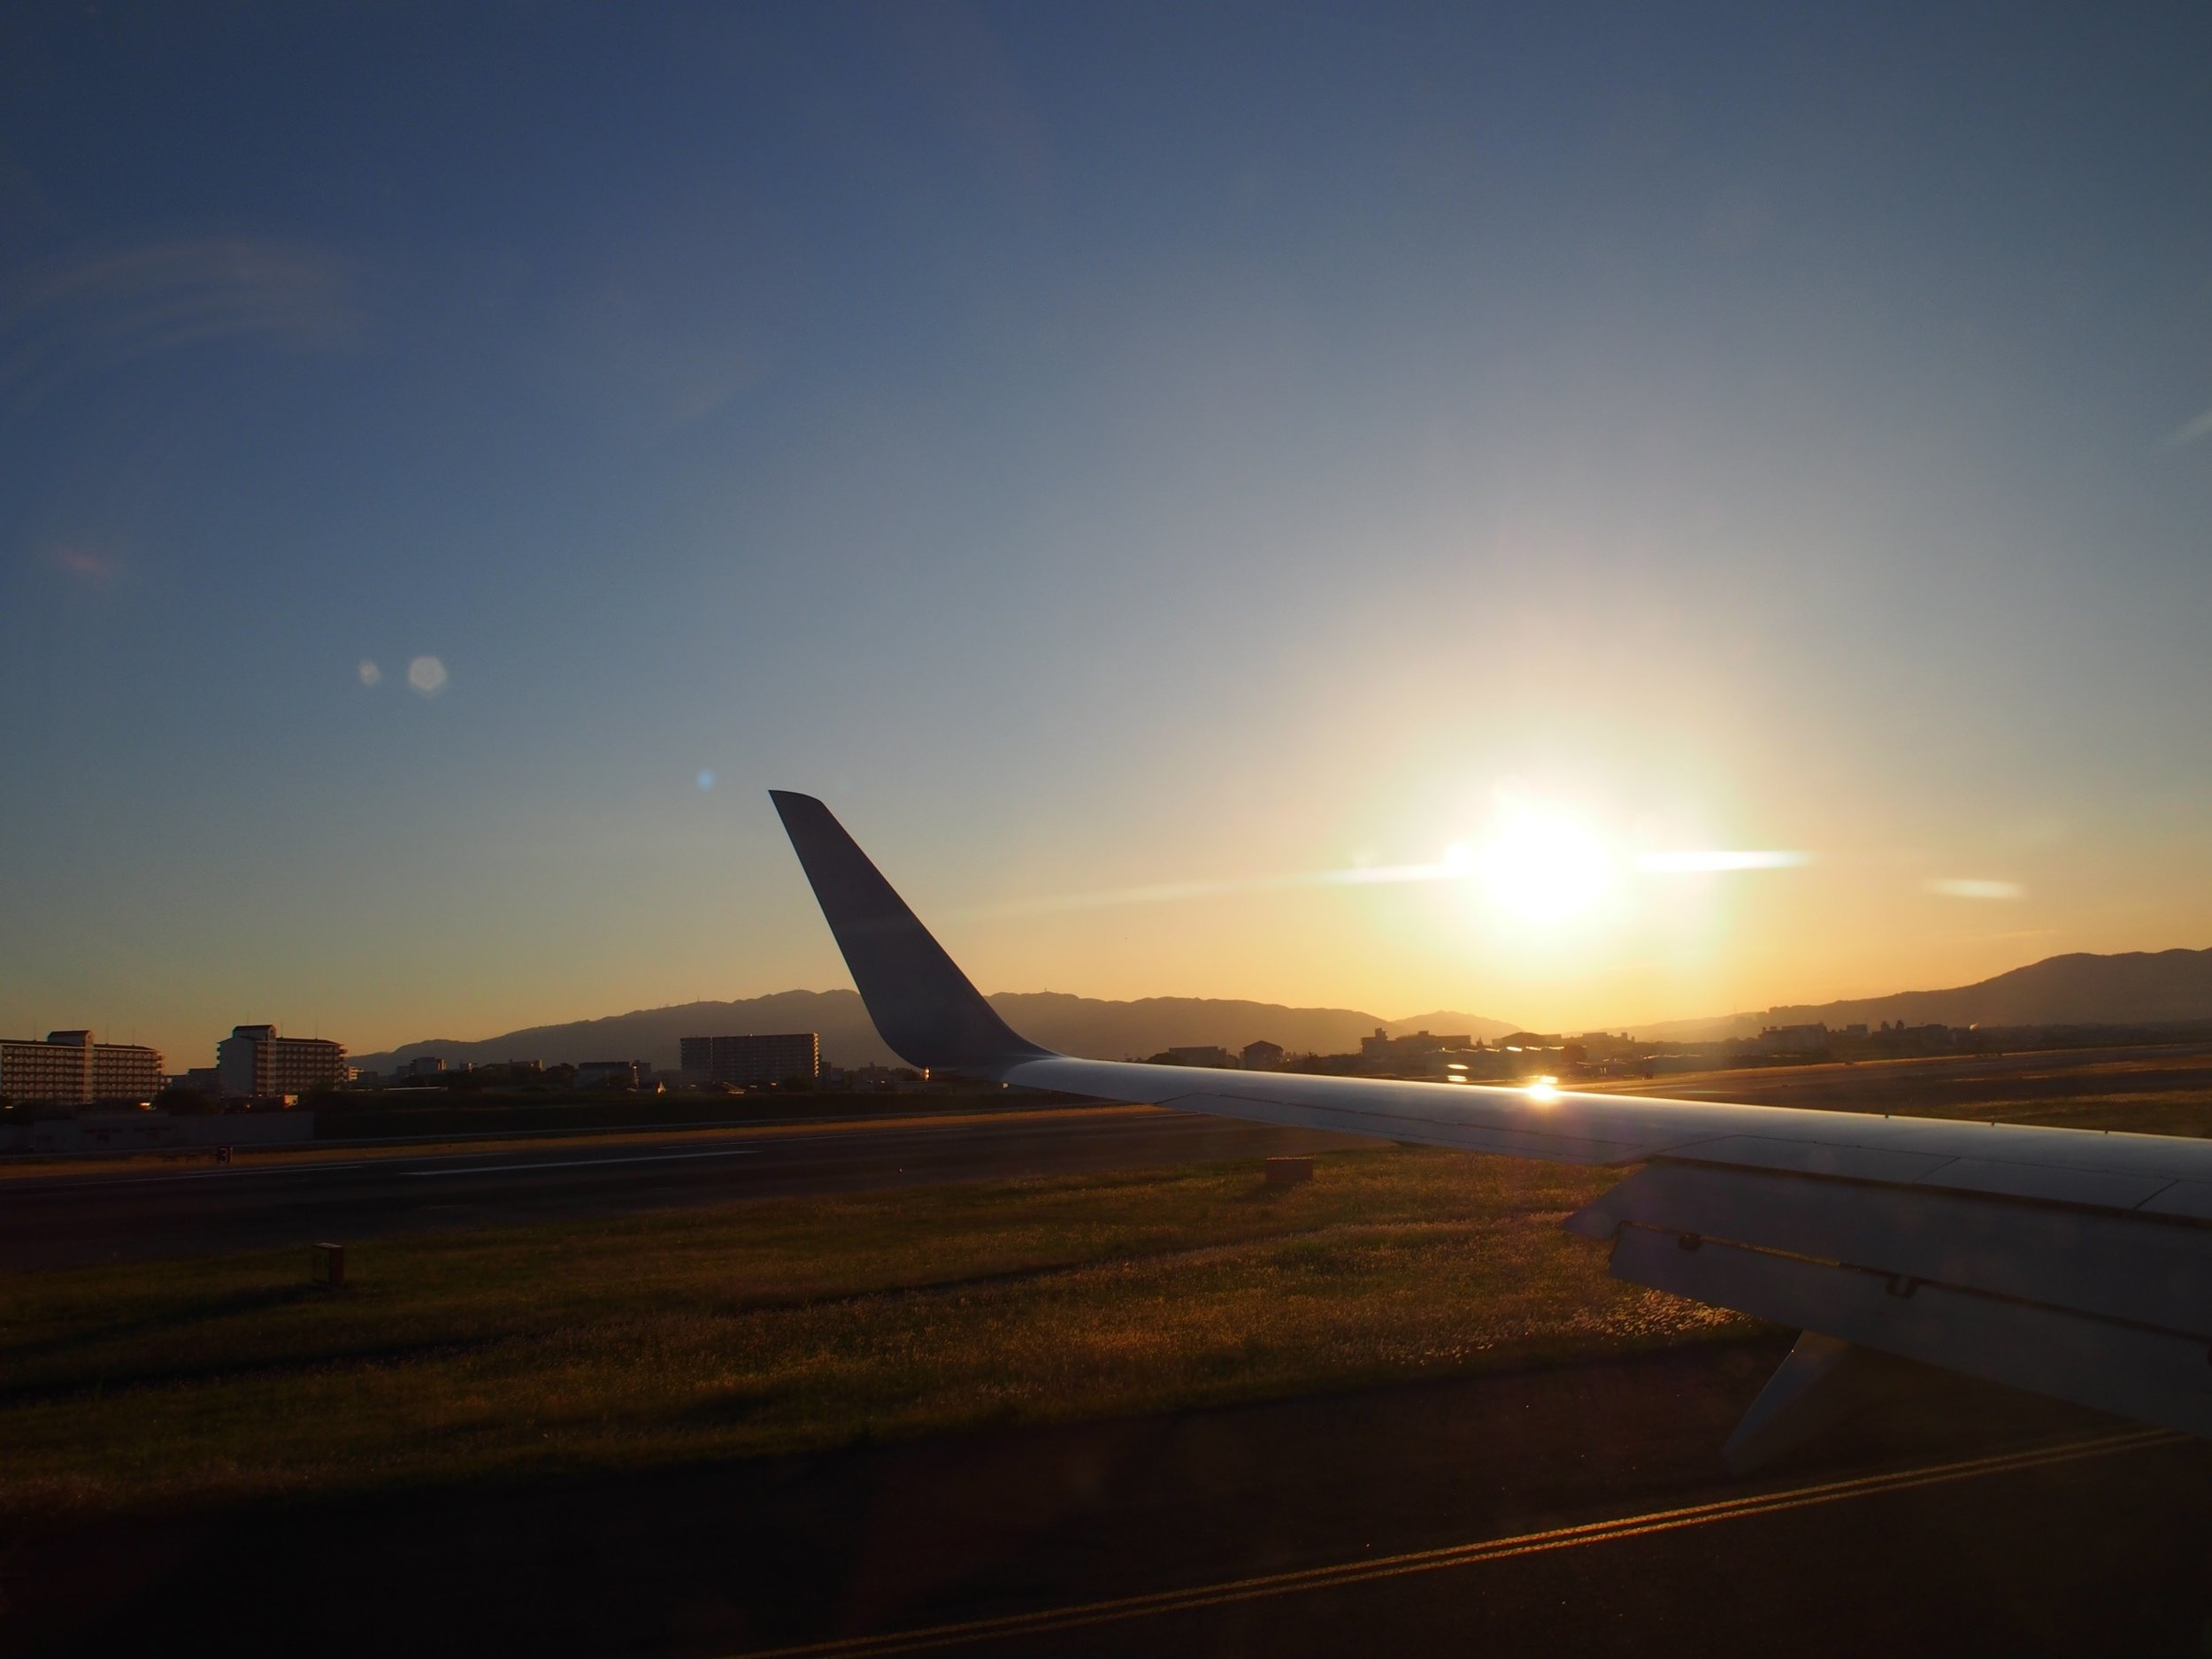 Sunset upon arrival